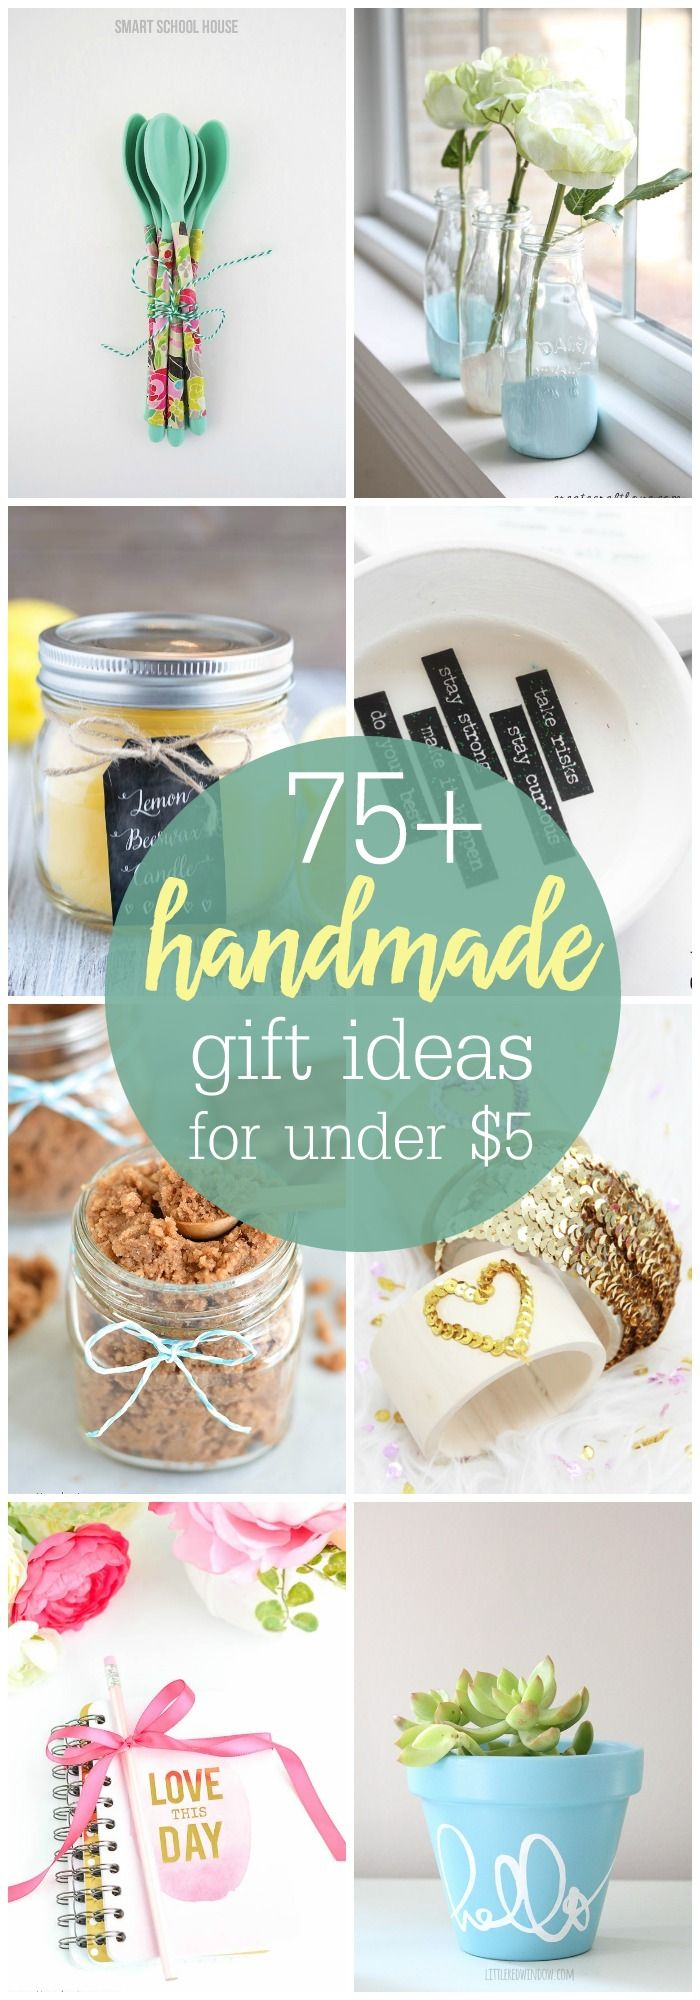 A wonderful collection of 75+ Handmade Gift Ideas that can be made for under $5....